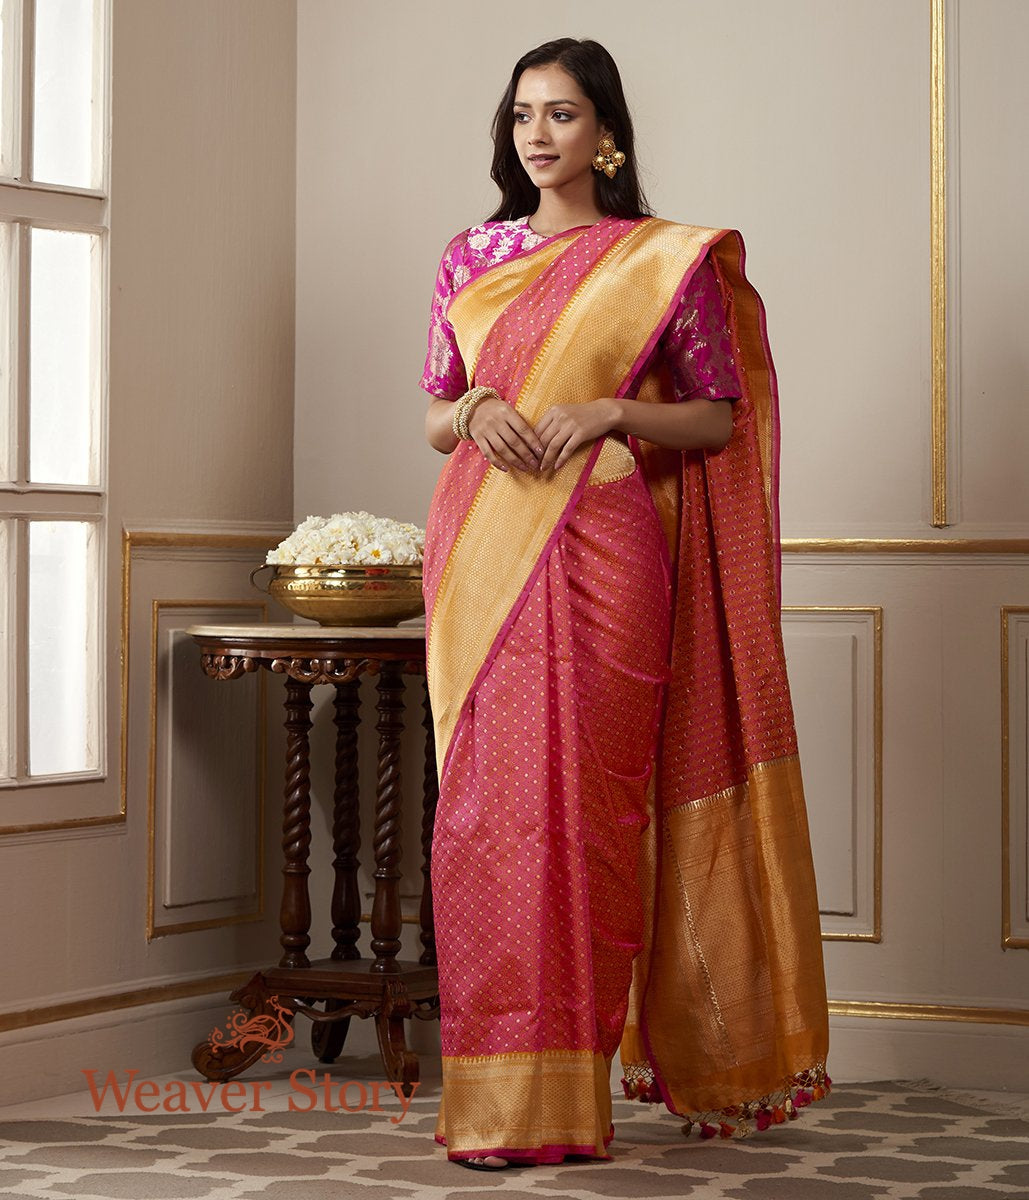 Handwoven Pink and Orange Banarasi Tanchoi Saree with Zari Booti